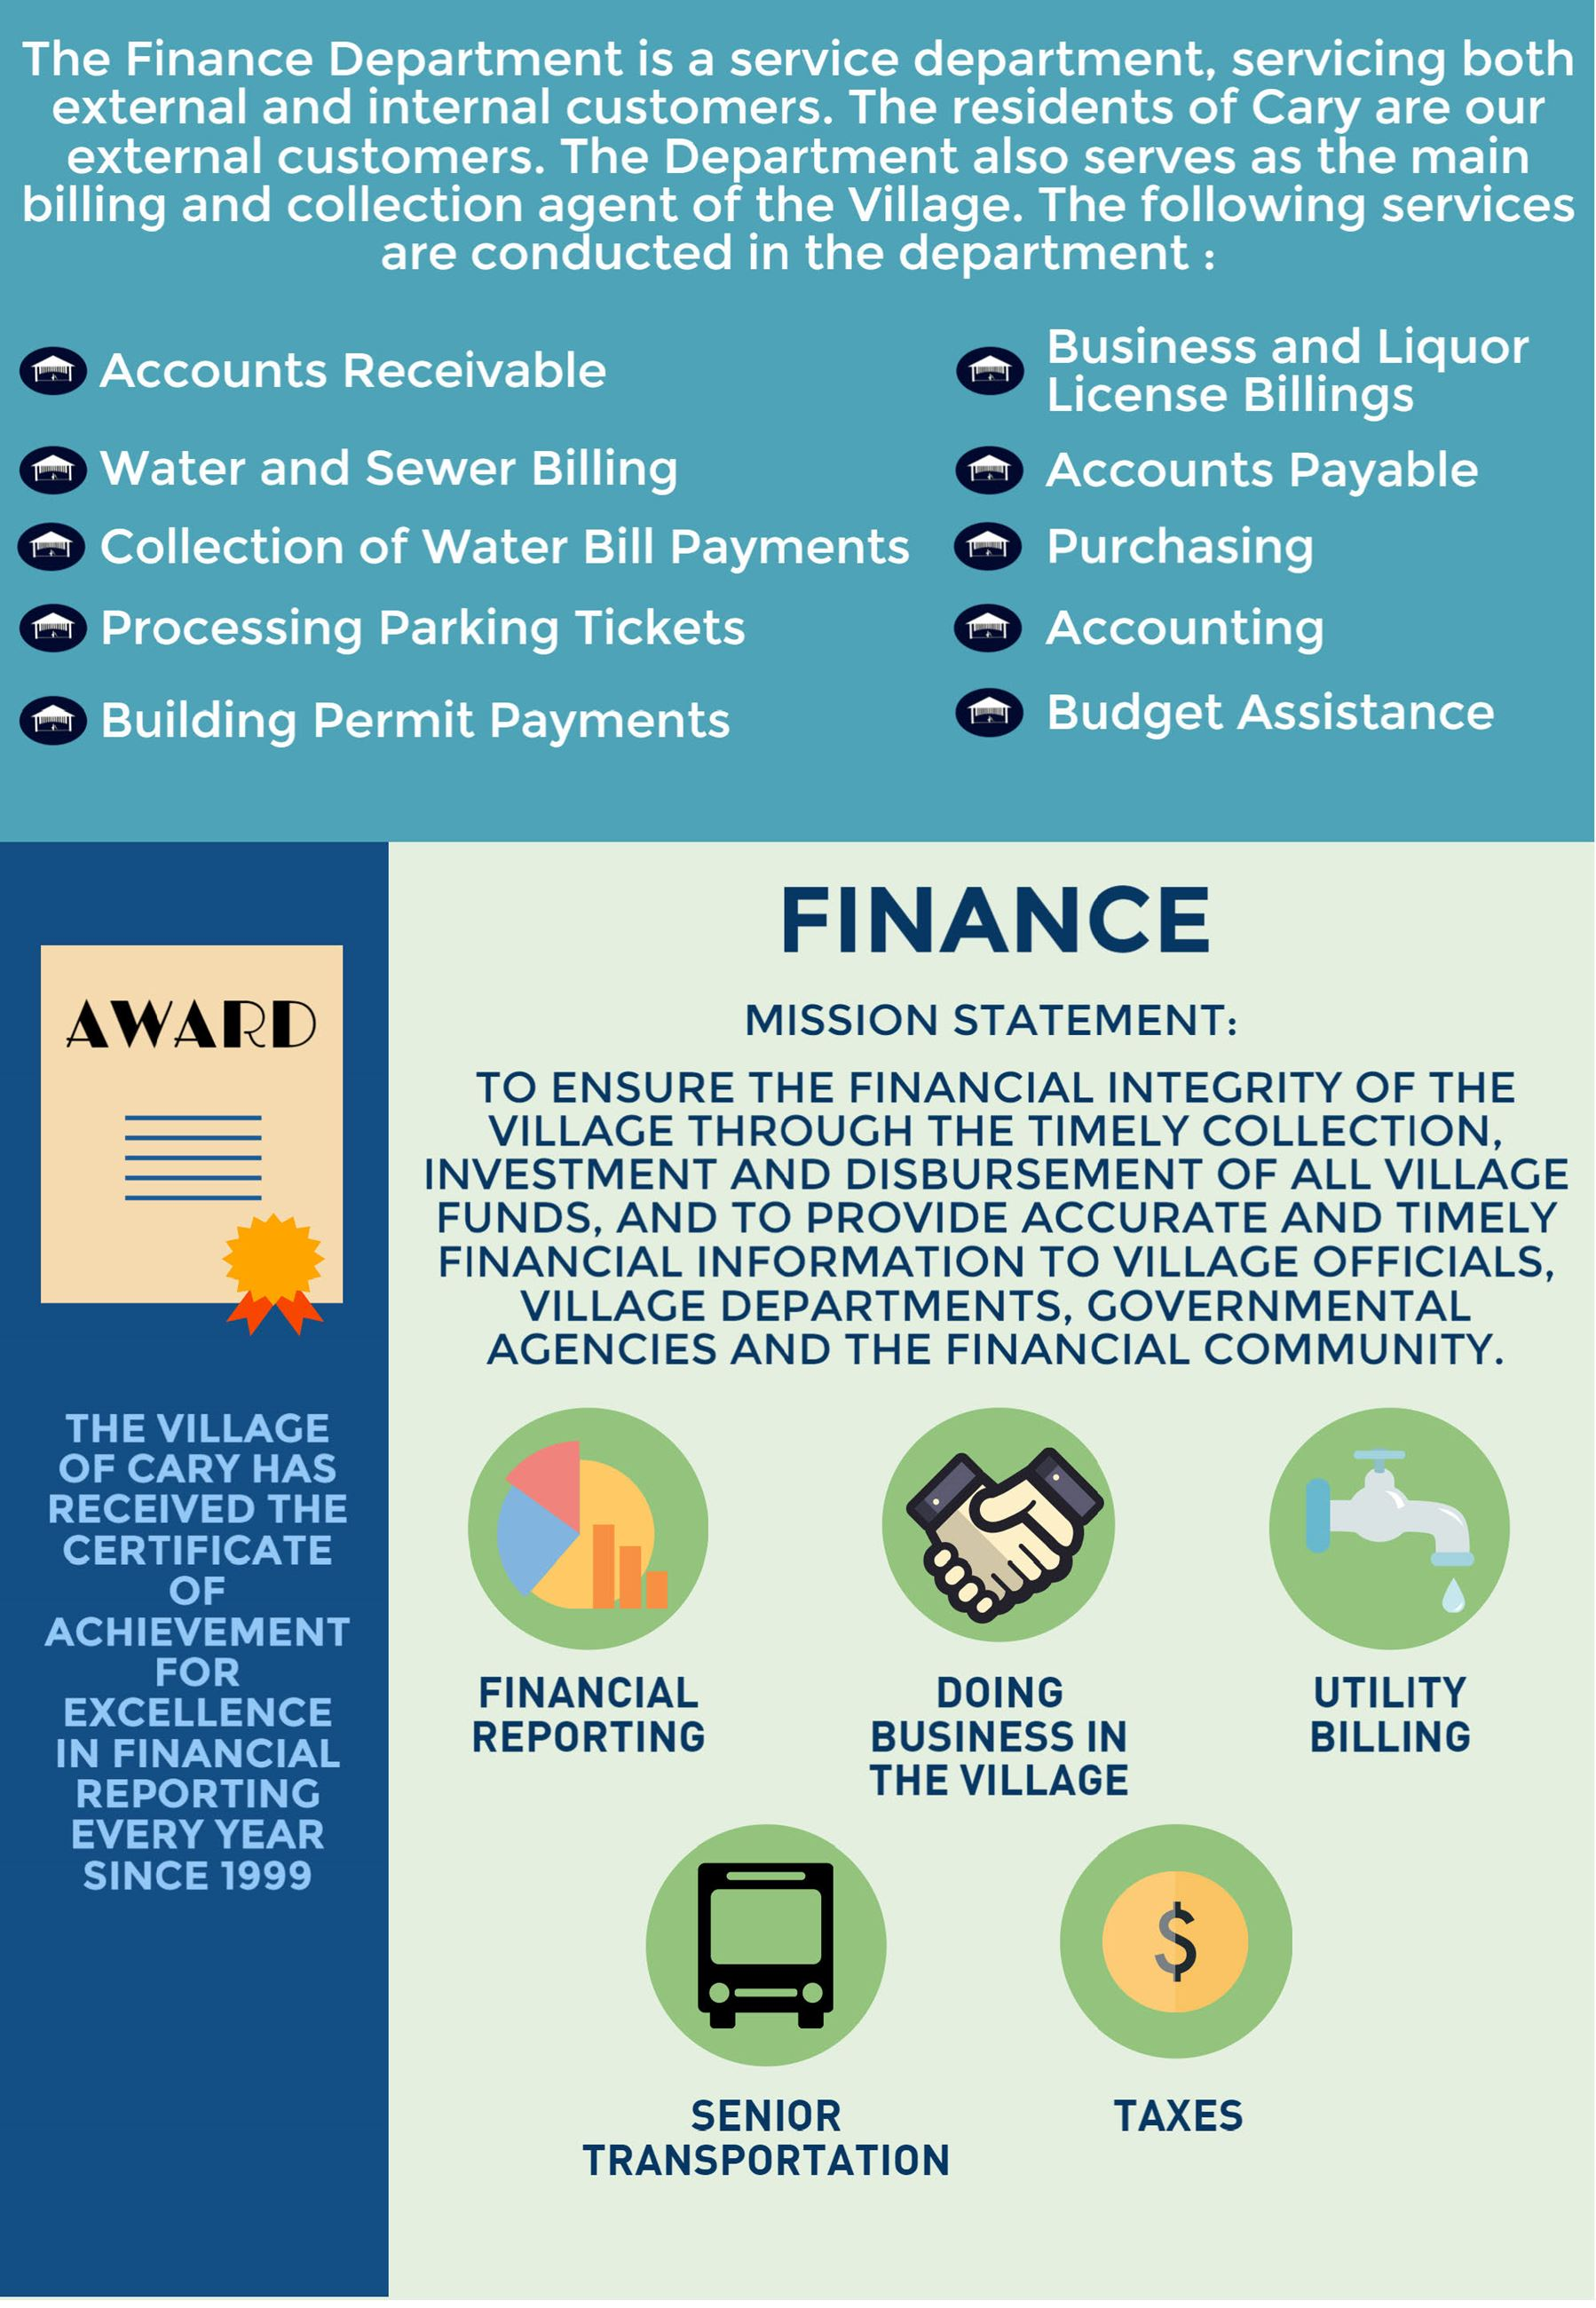 FINANCE WEBSITE MAIN PAGE